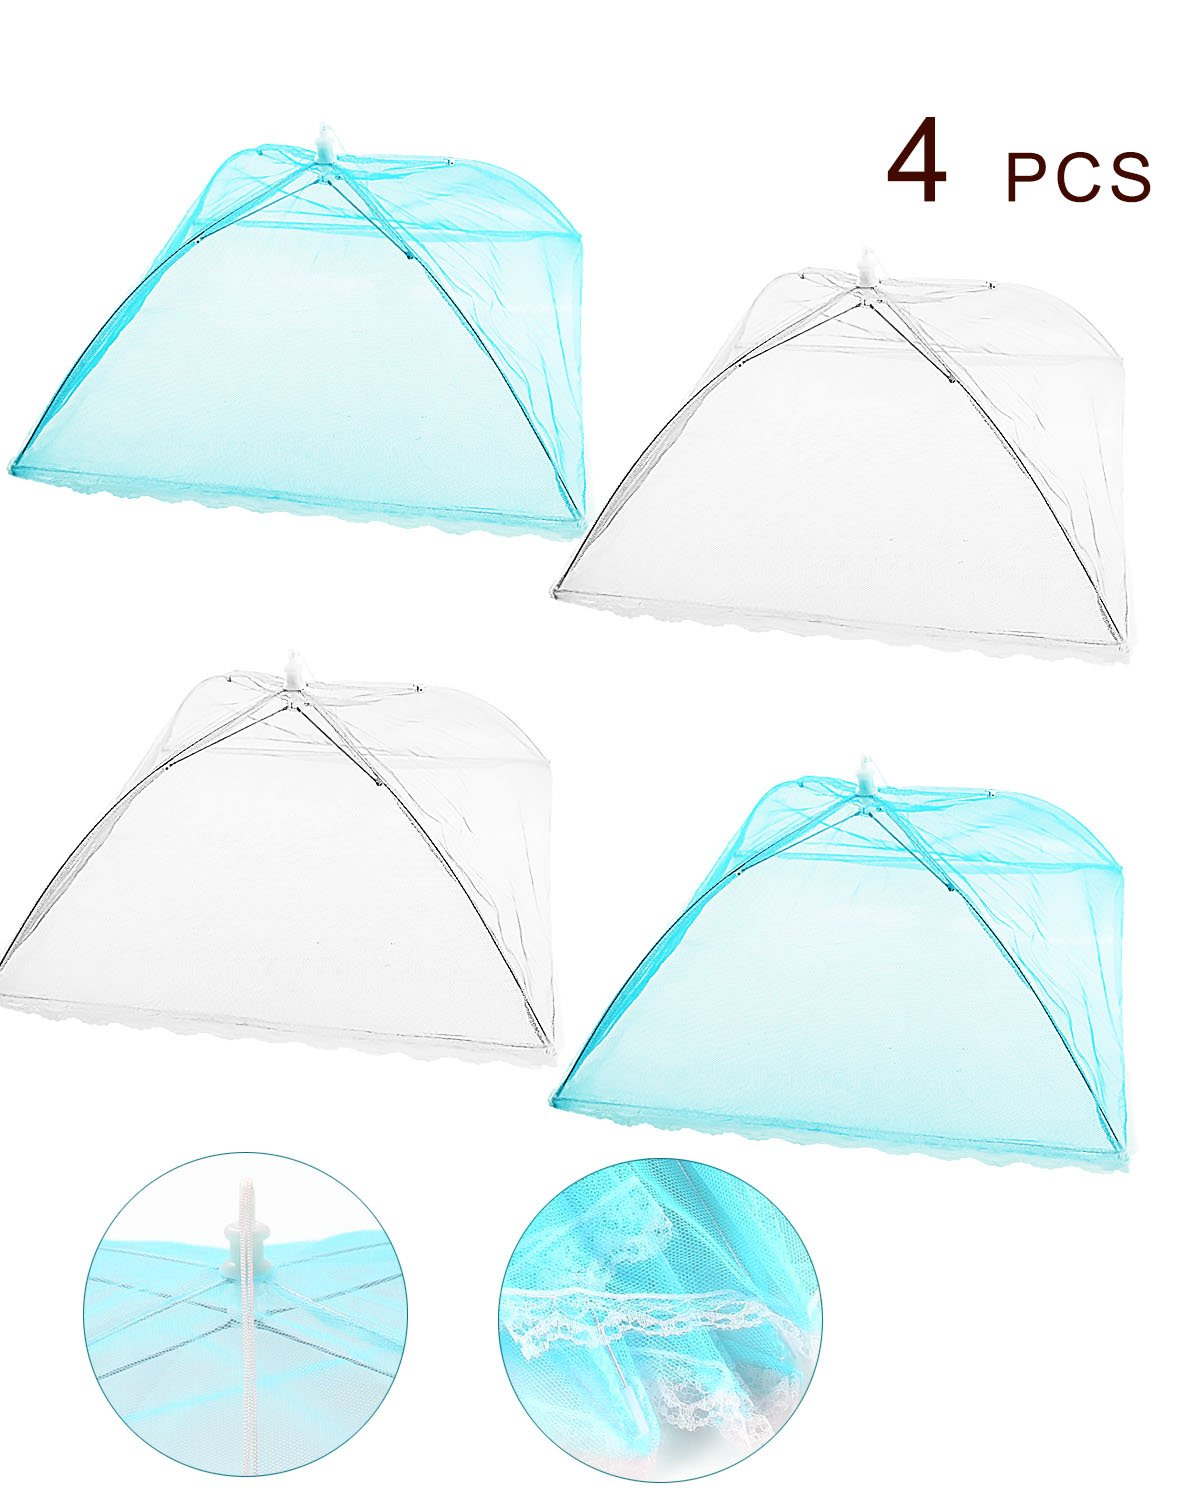 SBYURE 18''x18'' Large Size Color Pop-Up Mesh Food Cover Tents Umbrella for Outdoors, Screen Tents Protectors For Bugs, Parties Picnics, BBQs, Reusable and Collapsible,4PACK(whitex2,bluex2)